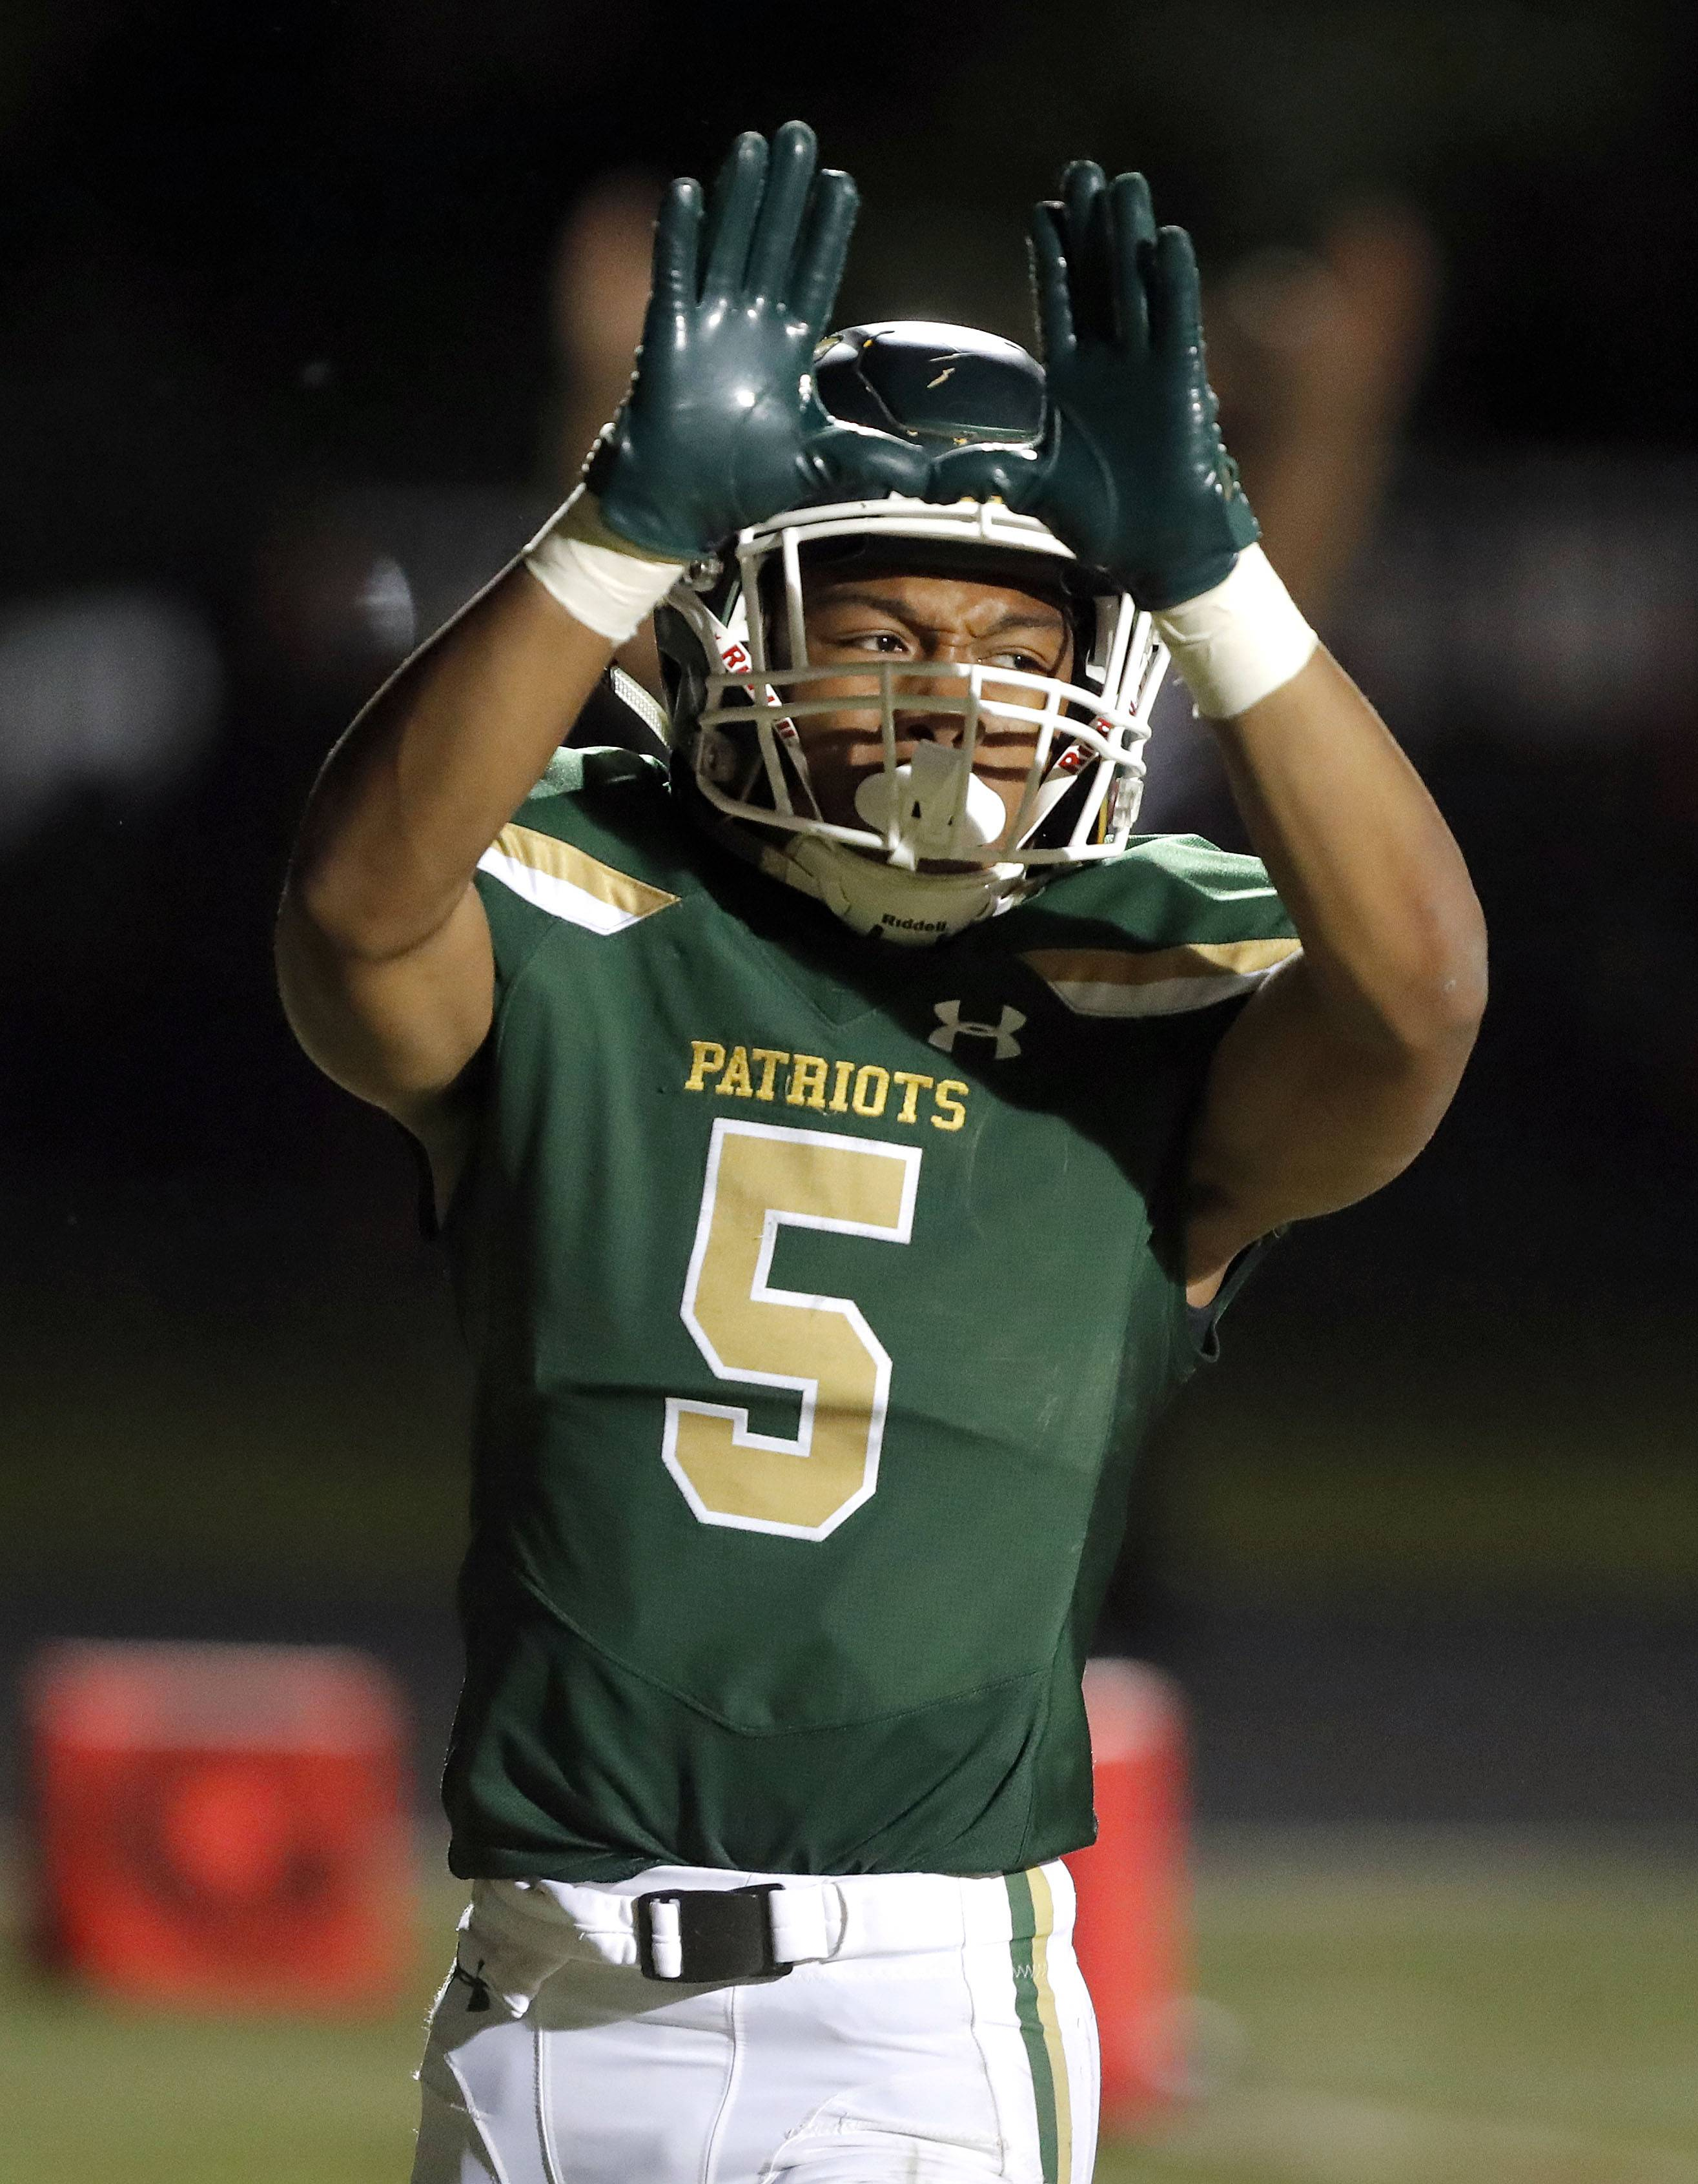 Stevenson and junior standout JeanMarc Etienne will travel to Marist Saturday night for a first round Class 8A playoff game.